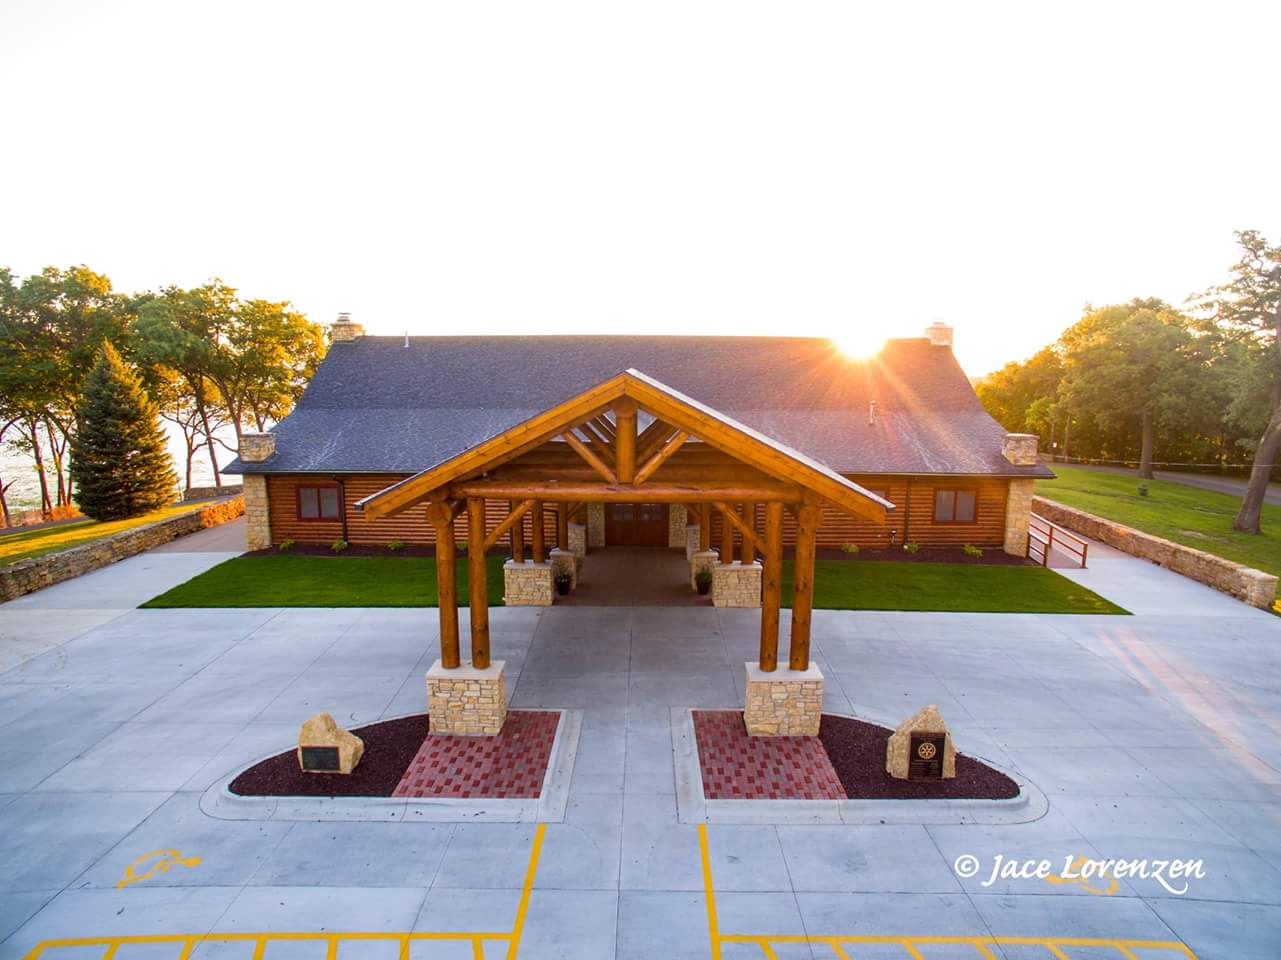 Arial-view-of-Lodge-Entrance--2-of-2-.jpg